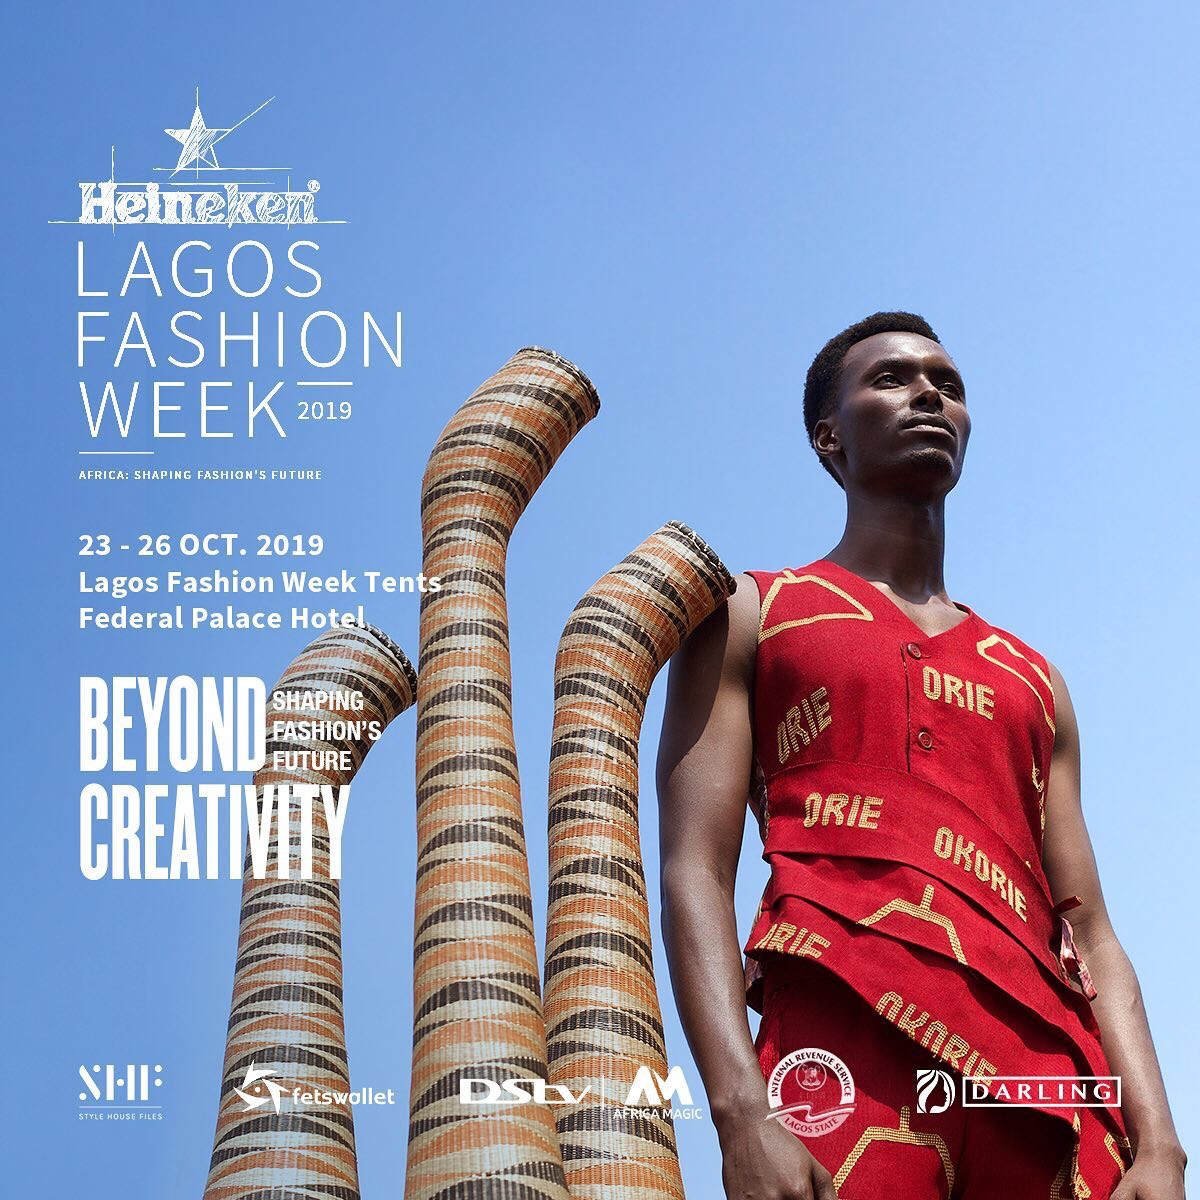 HENEIKEN LAGOS FASHION WEEK 2019